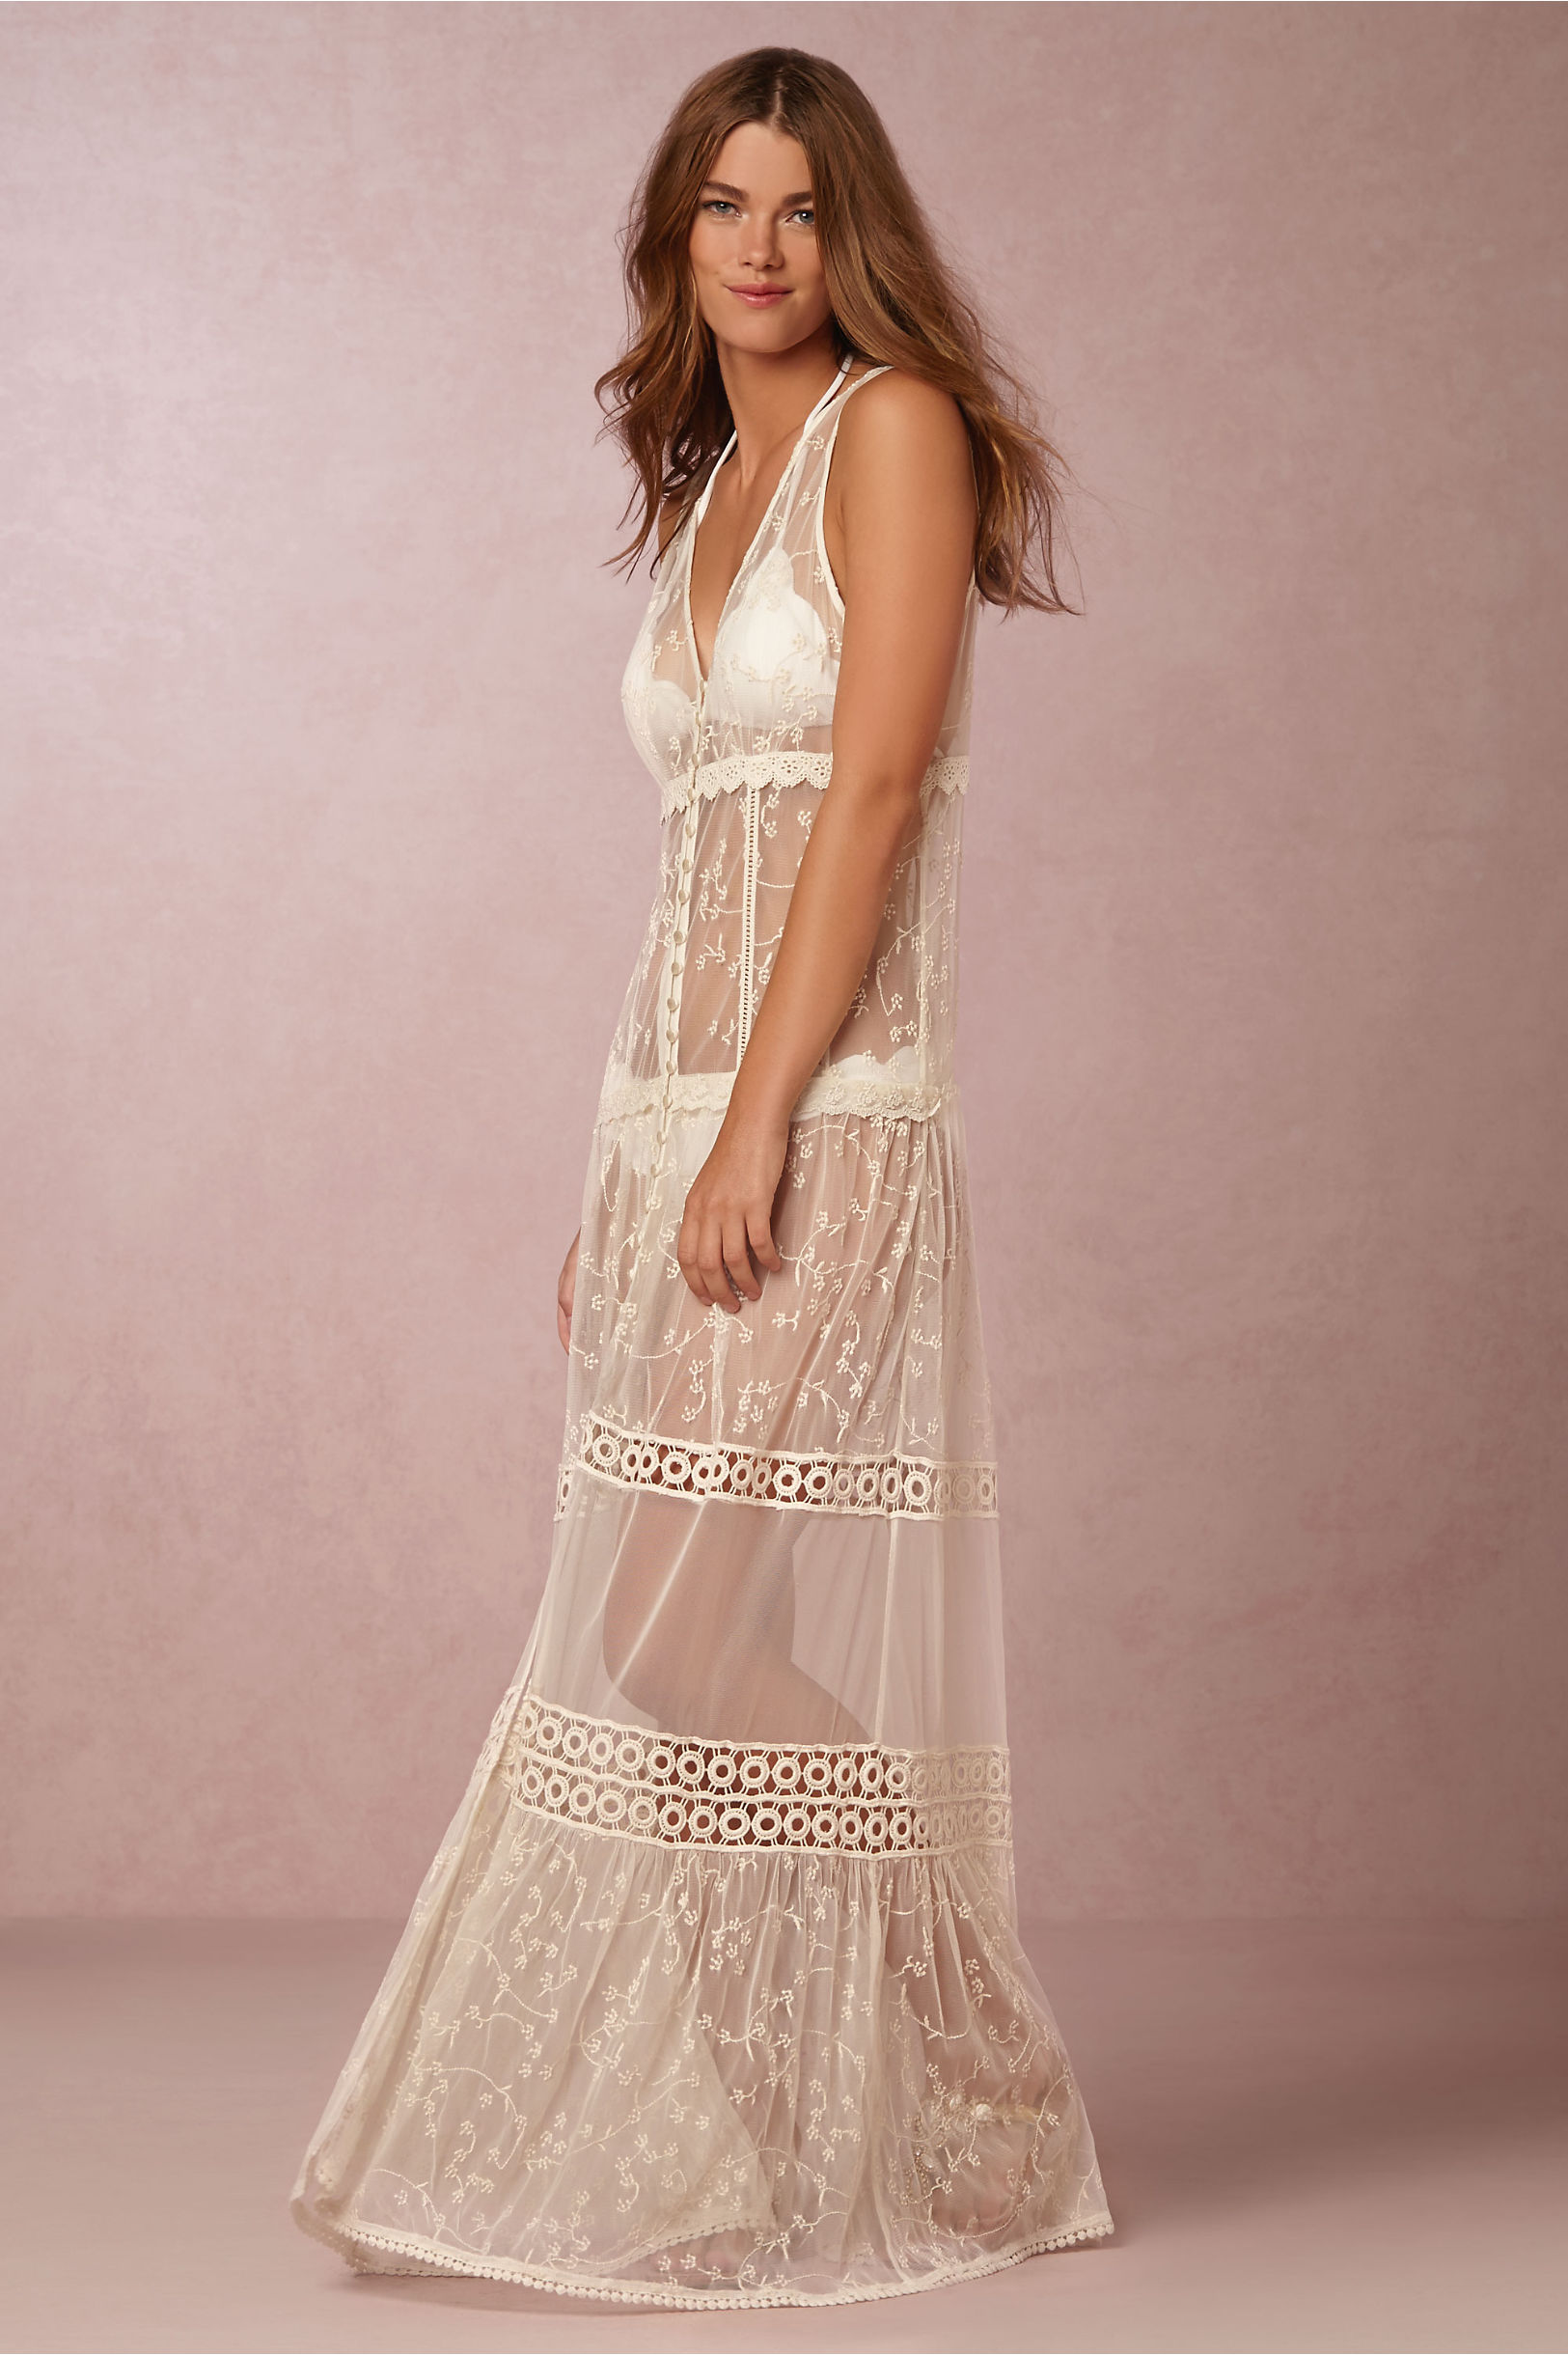 Riona Sheer Gown in Bride | BHLDN